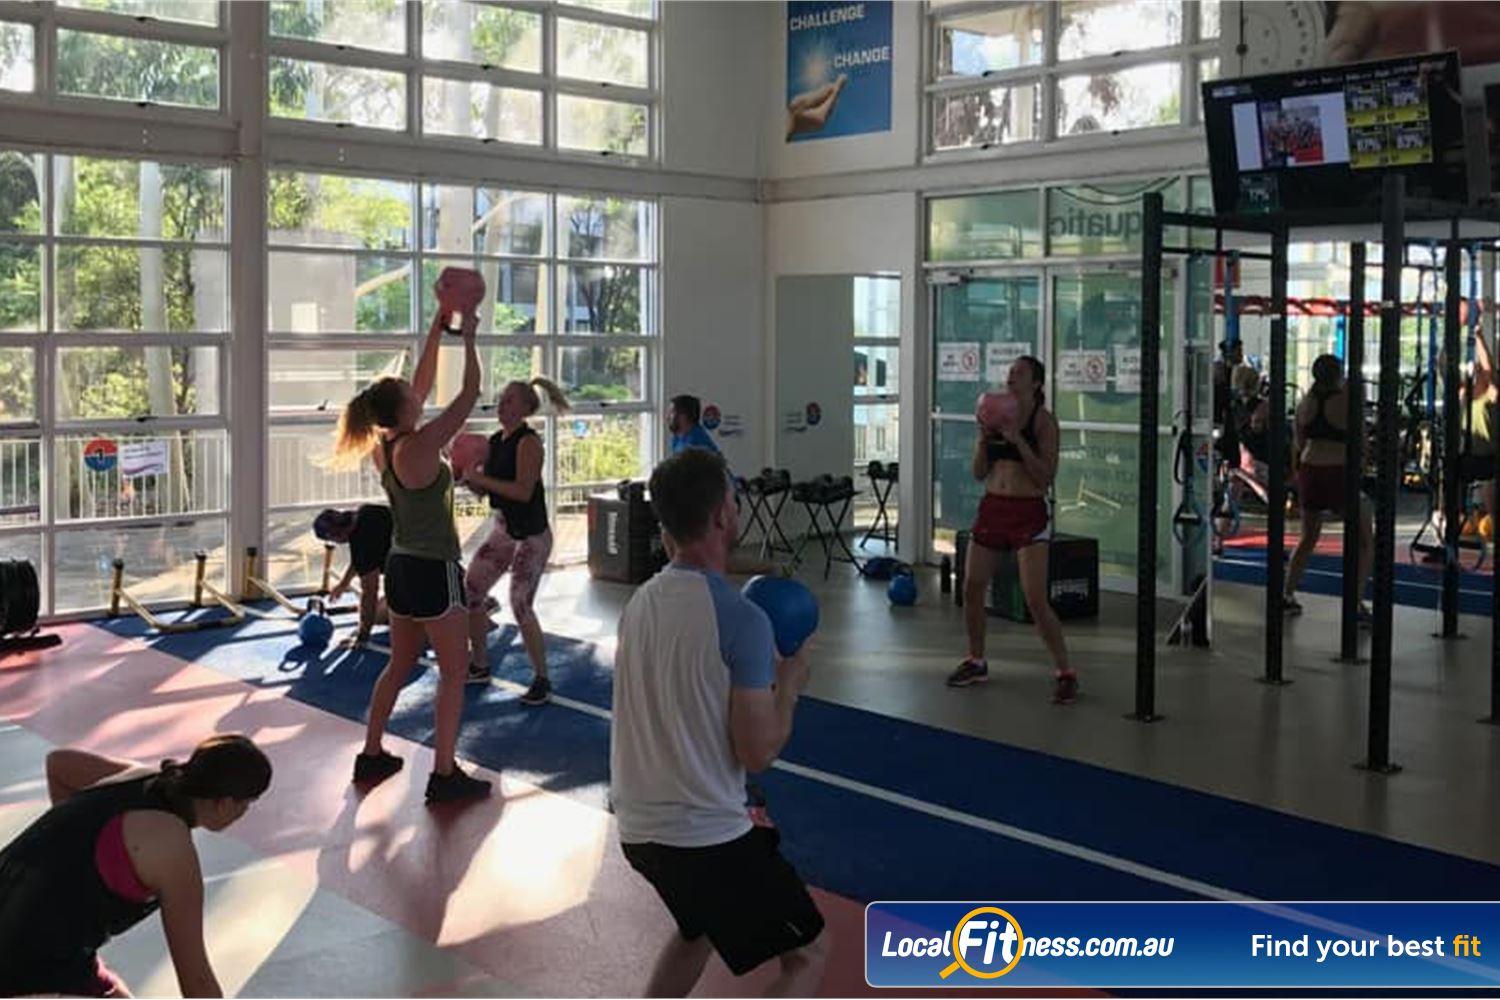 North Ryde Fitness & Aquatic Near Denistone The fully equipped North Ryde HIIT gym.